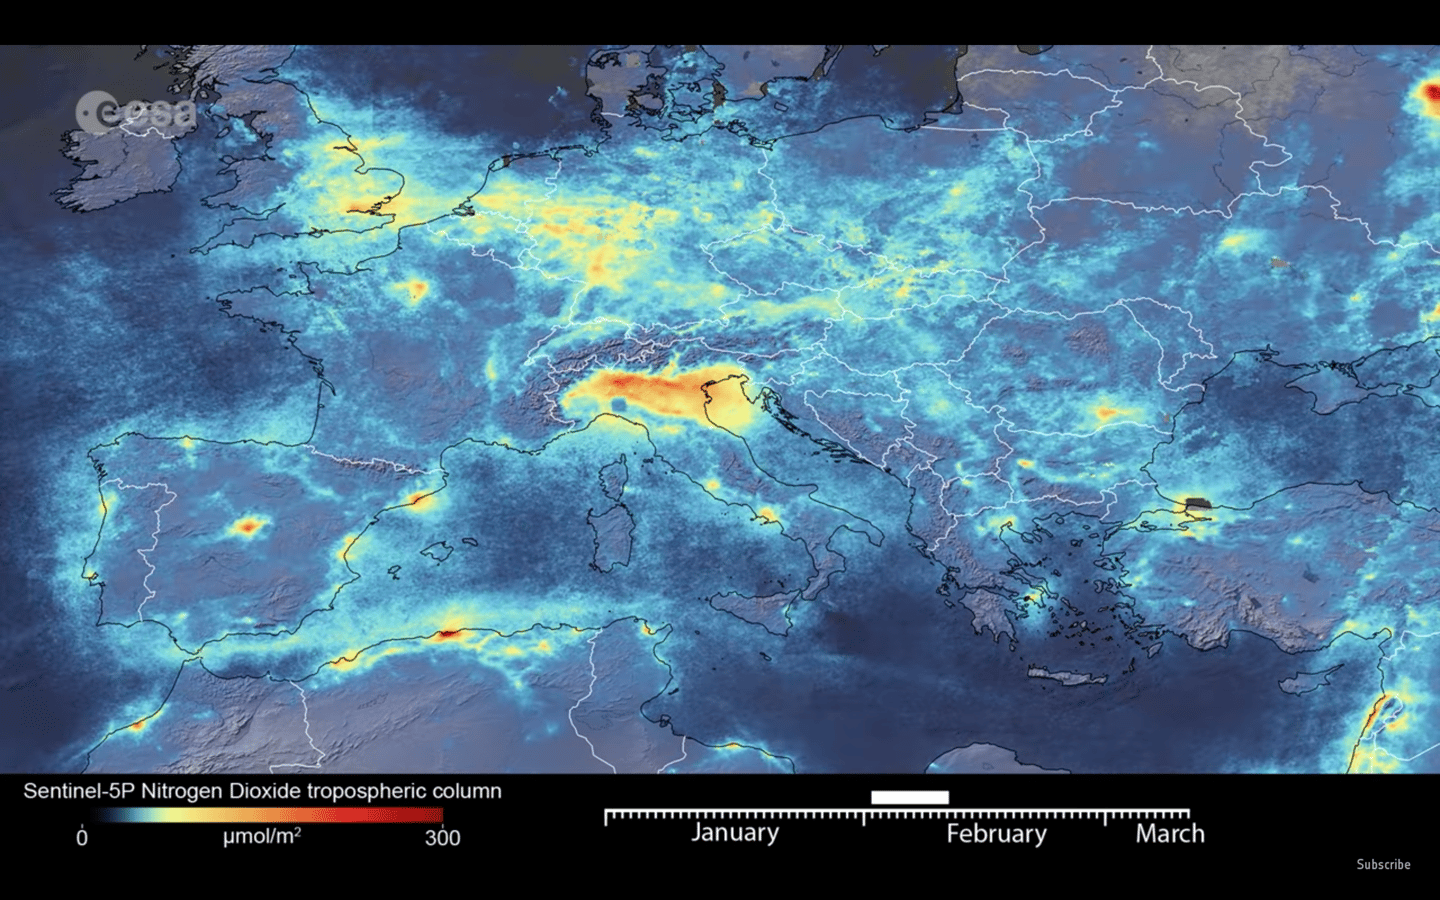 Monitoring by an ESA satellite has revealed a drop in nitrogen dioxide emissions over Italy following the coronavirus lockdown